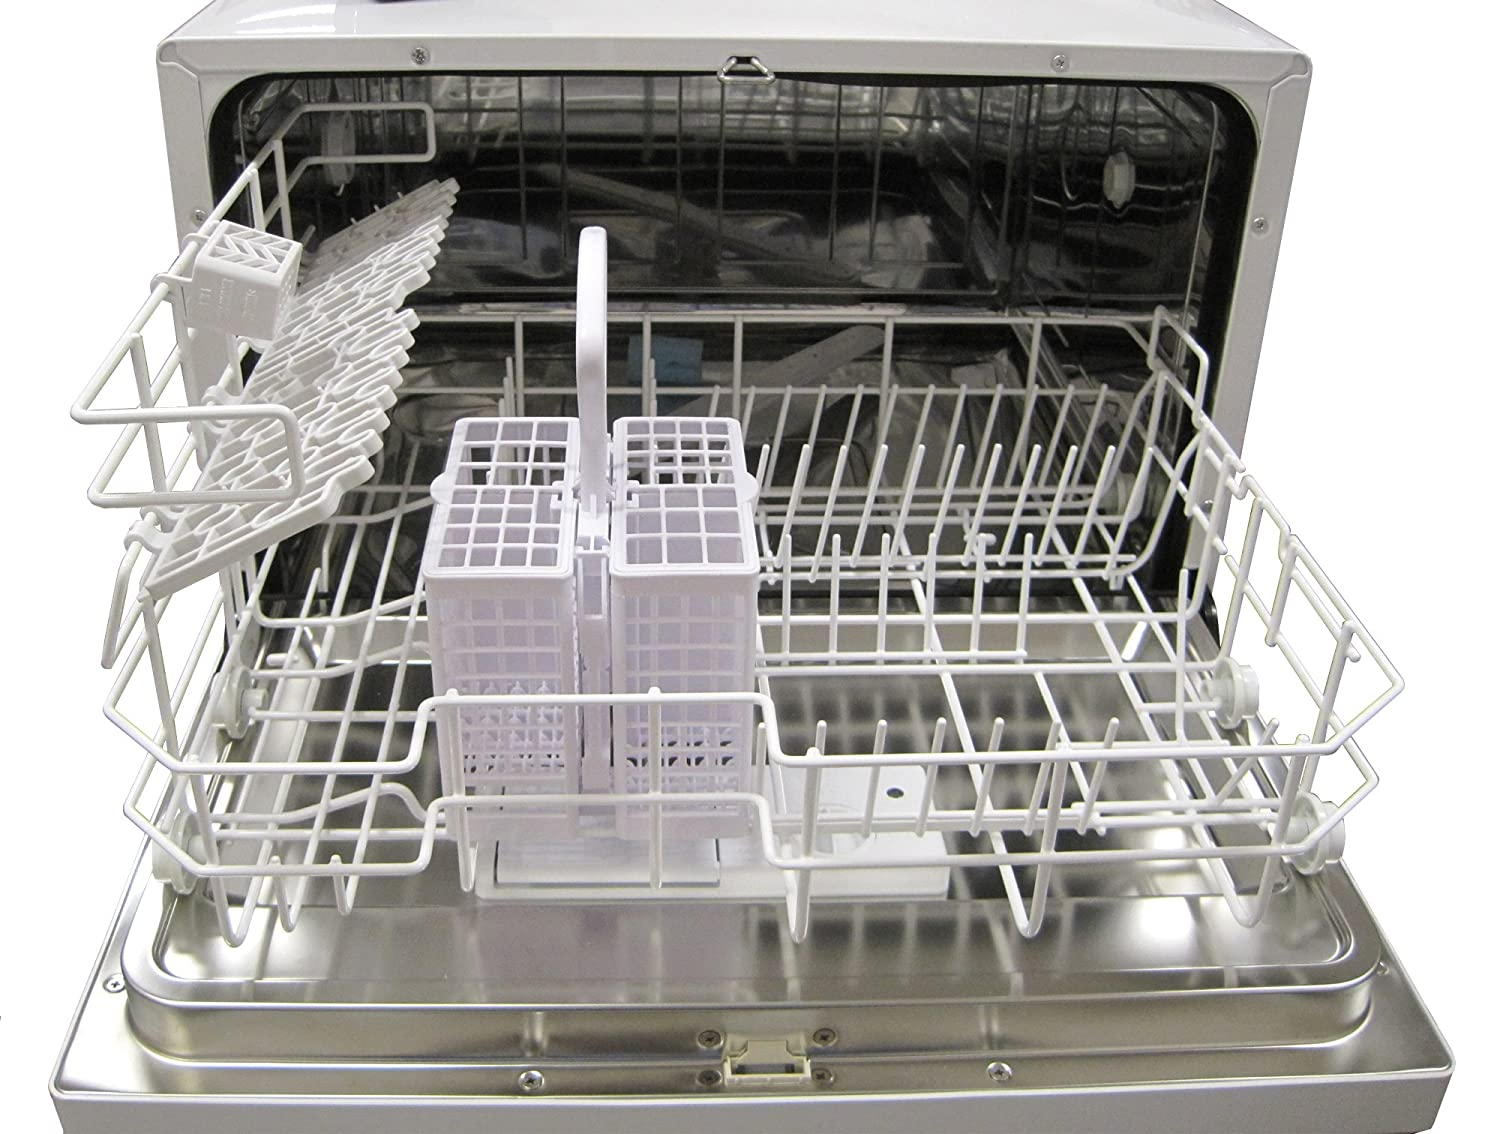 countertops place us setting dishwashers of countertop dishwasher portable